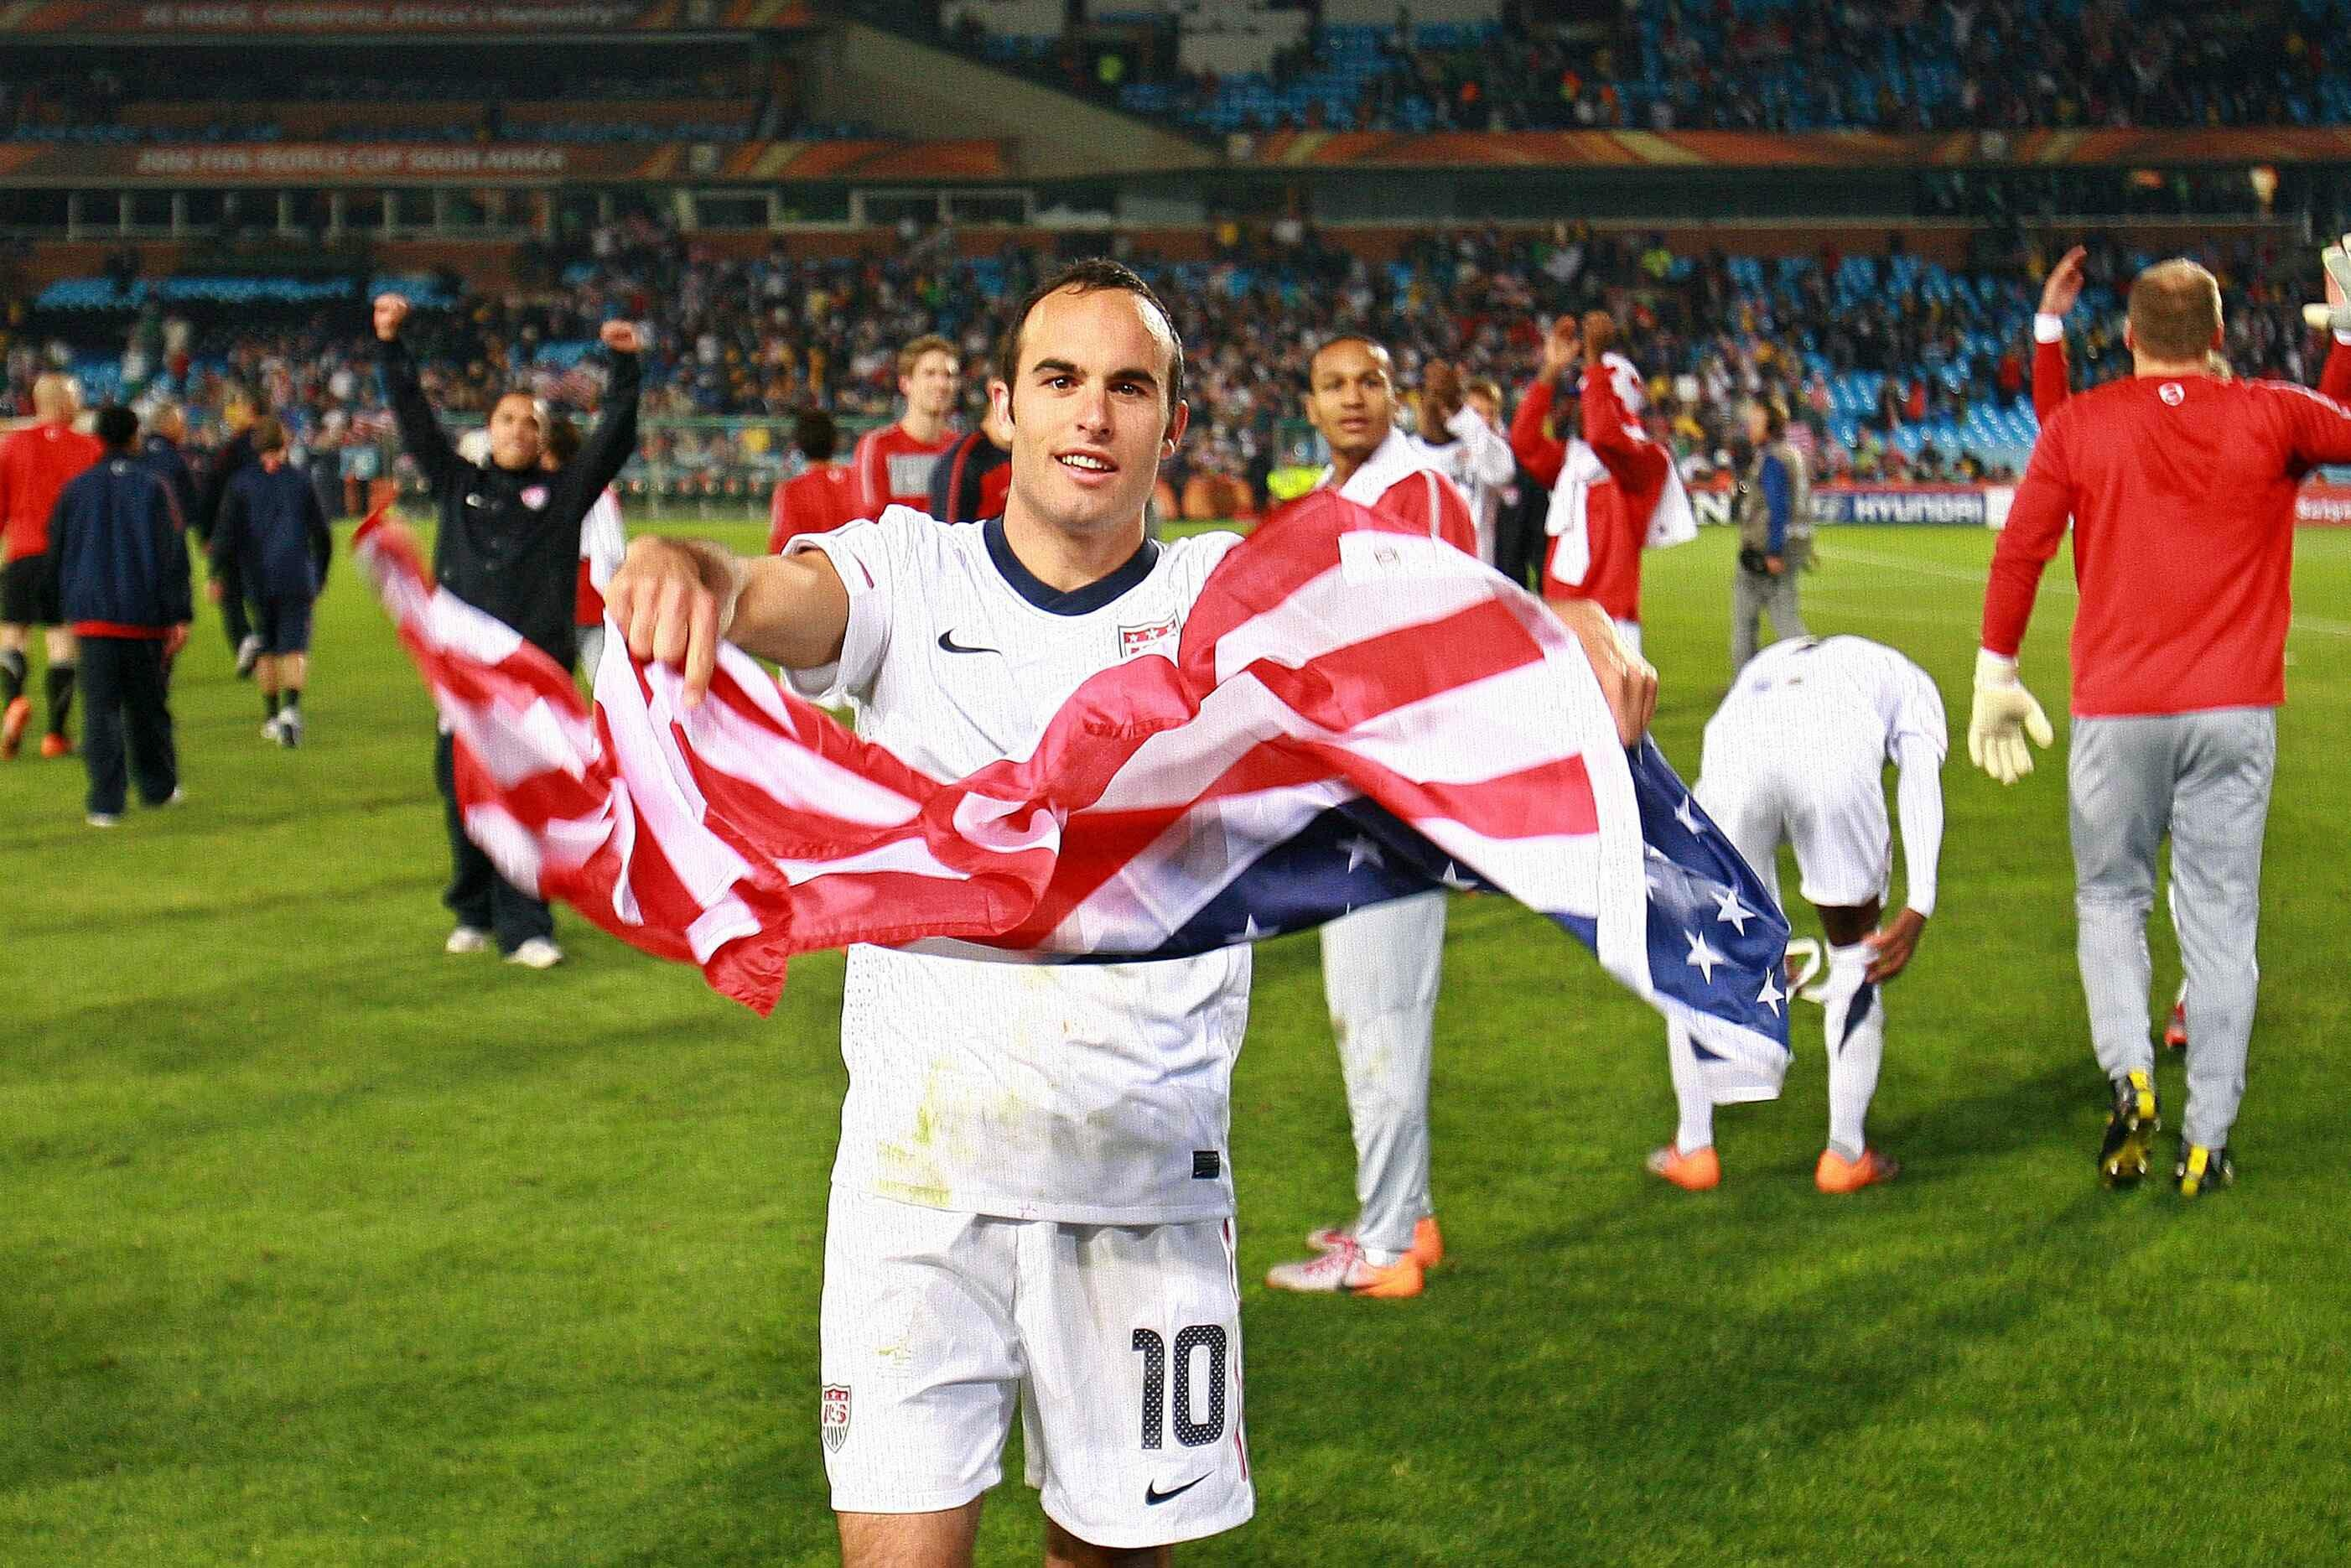 Landon Donovan is Rooting for Mexico in the World Cup and Everyone is Mad